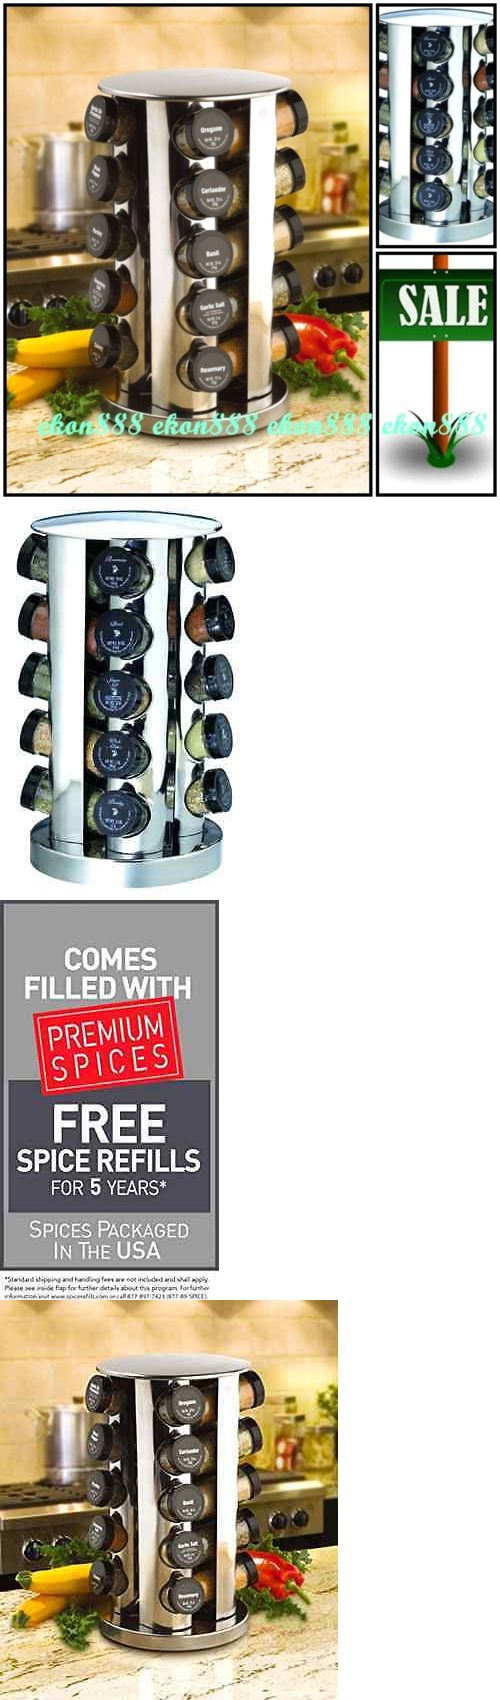 Spice Jars and Racks 20646: Rotating Spice Rack Jar Tower Carousel Organizer Herb Salt Cooking Canister Hold -> BUY IT NOW ONLY: $45.91 on eBay!